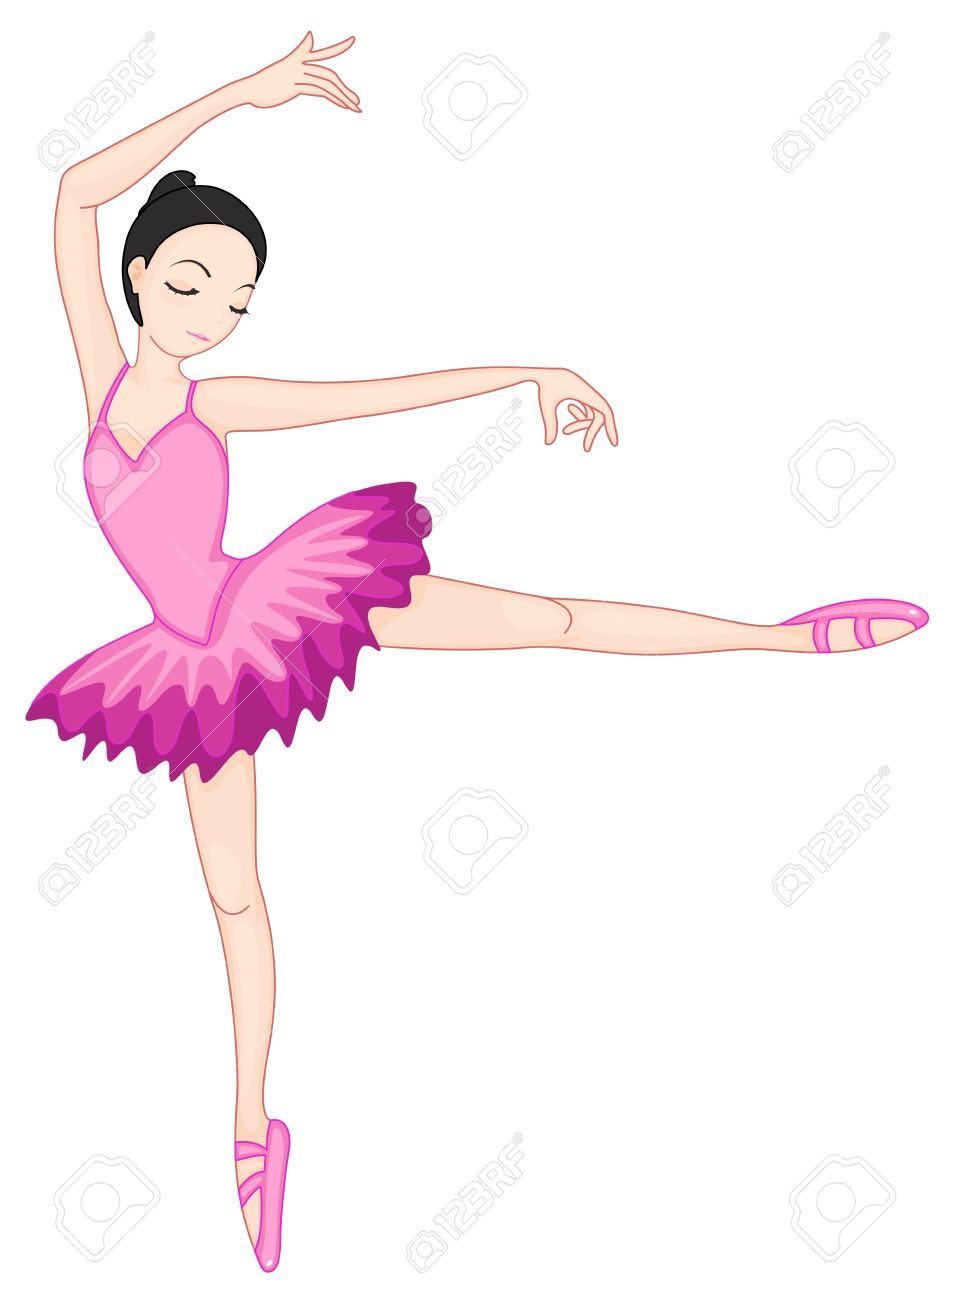 hight resolution of illustration of a ballerina pose on white royalty free cliparts vectors and stock illustration image 13268644